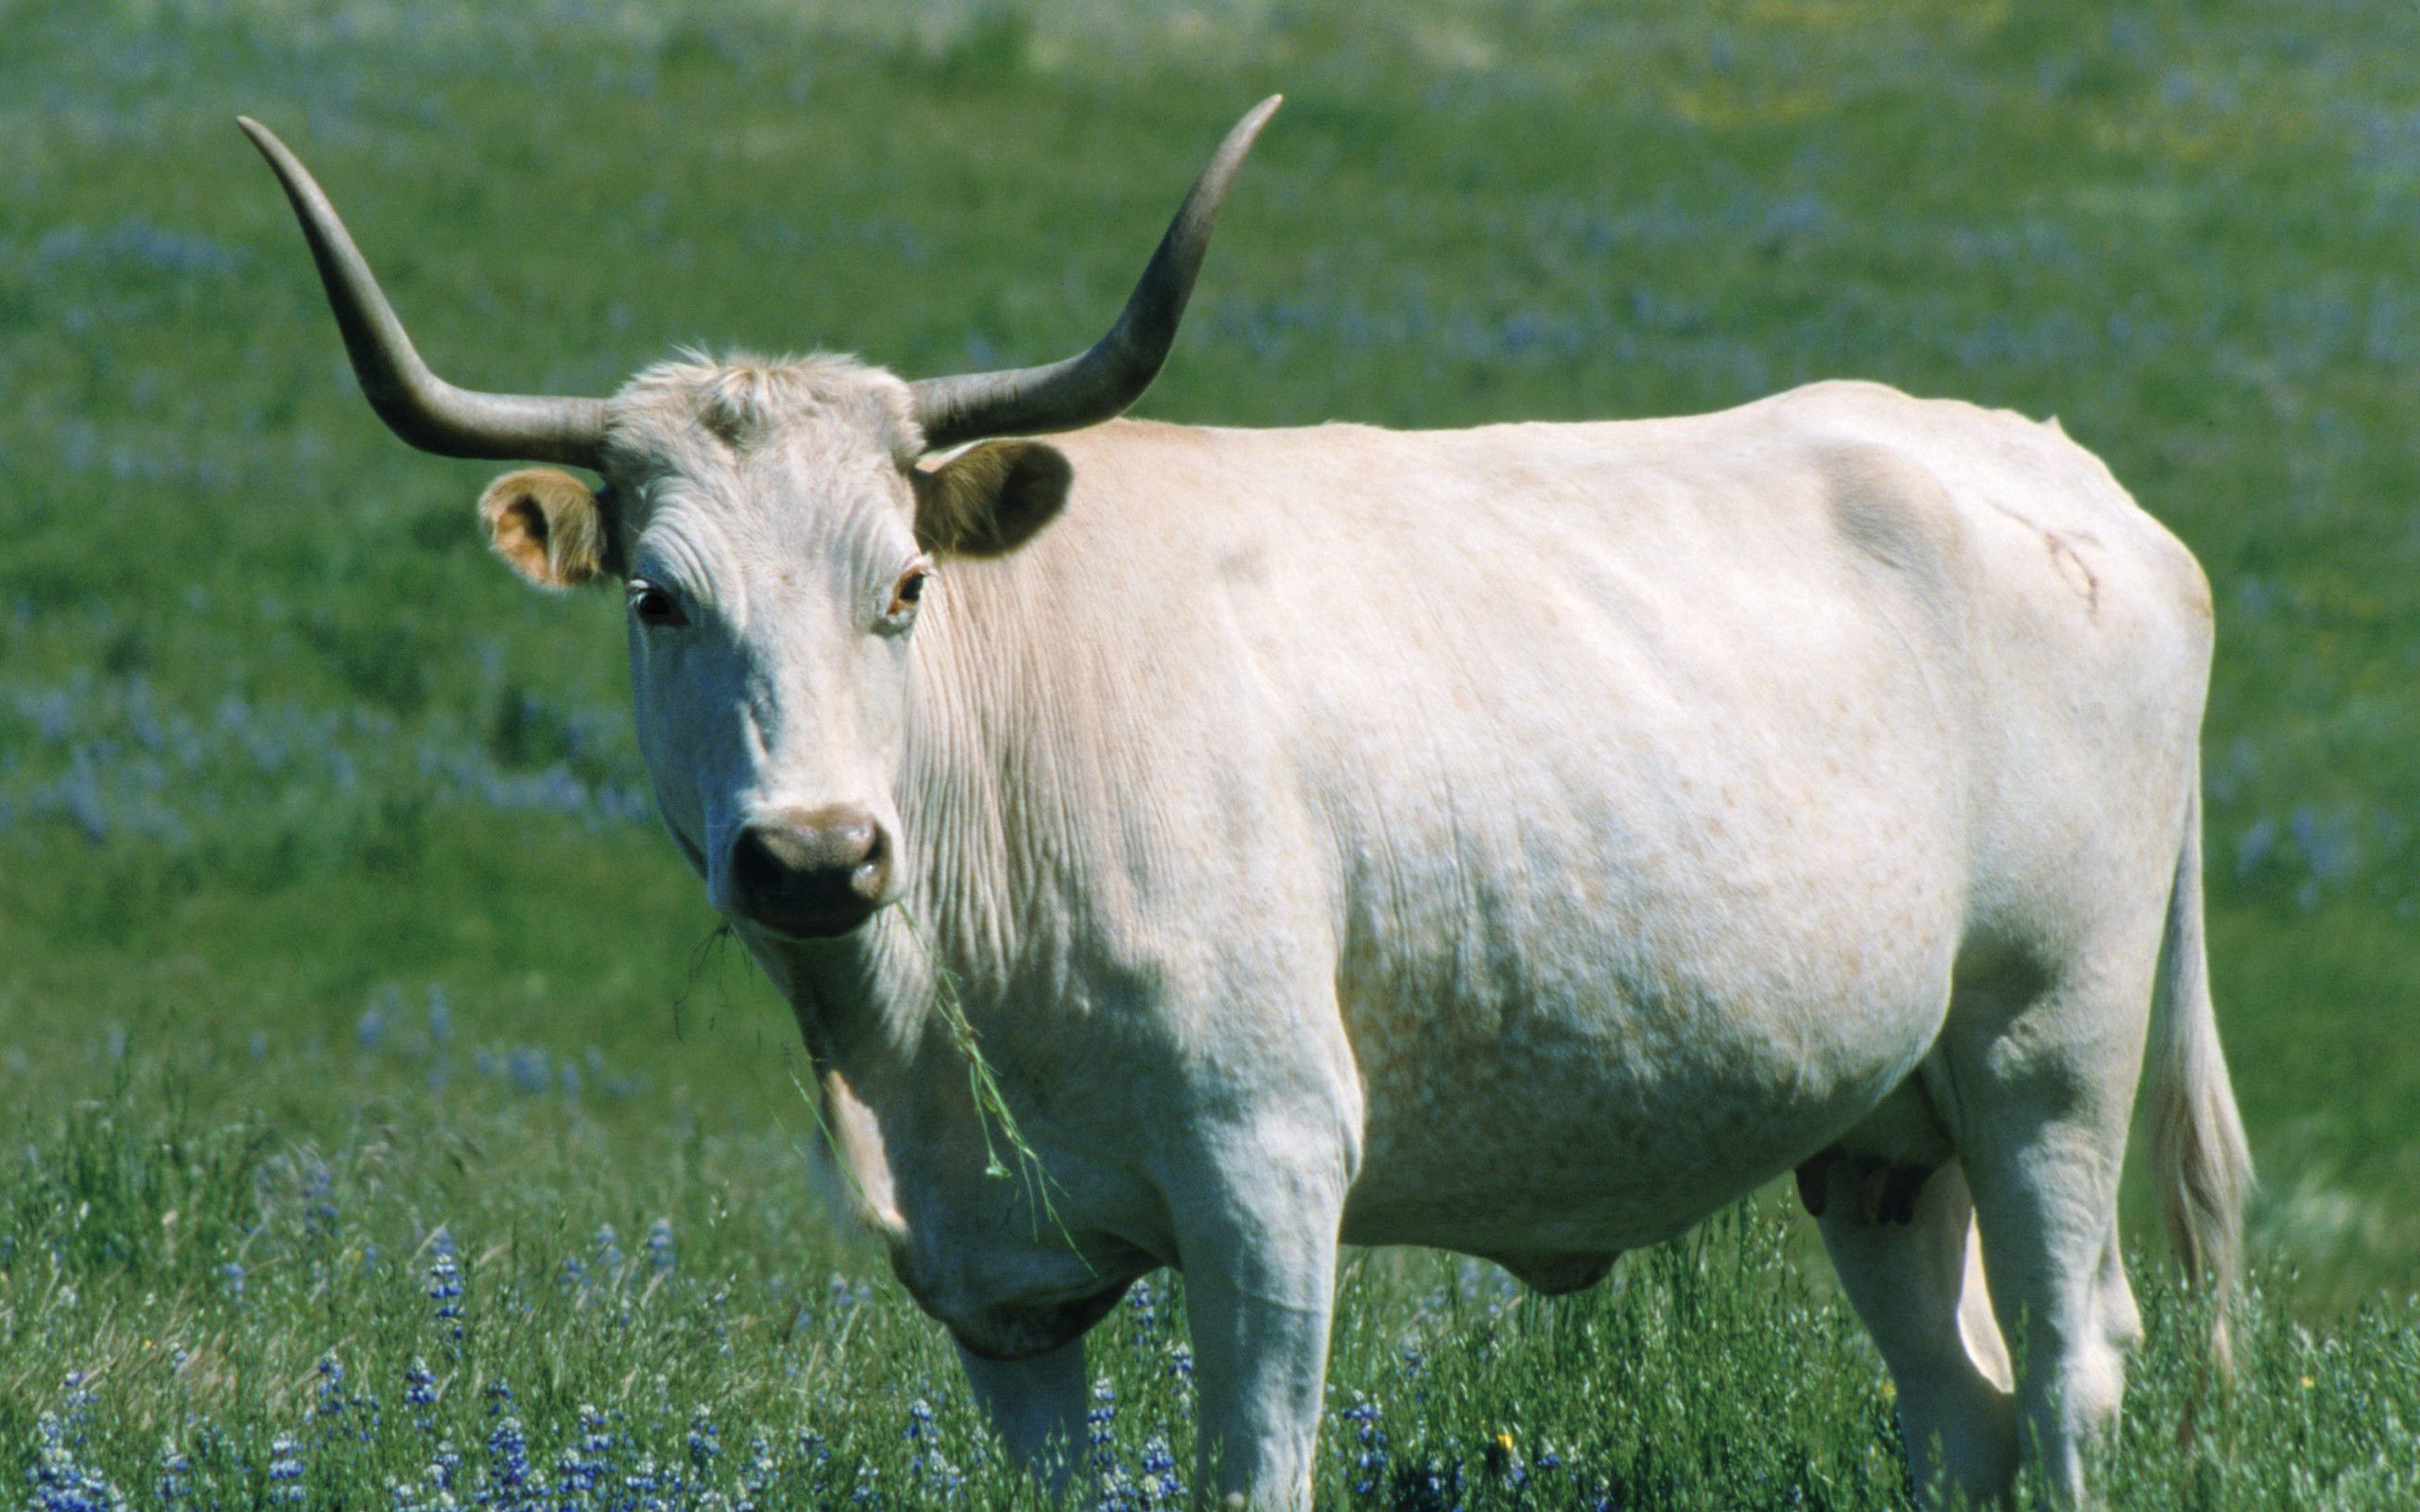 Cows Wallpapers Downloadeer Simply The Best Cow Pictures Cow Cow Wallpaper